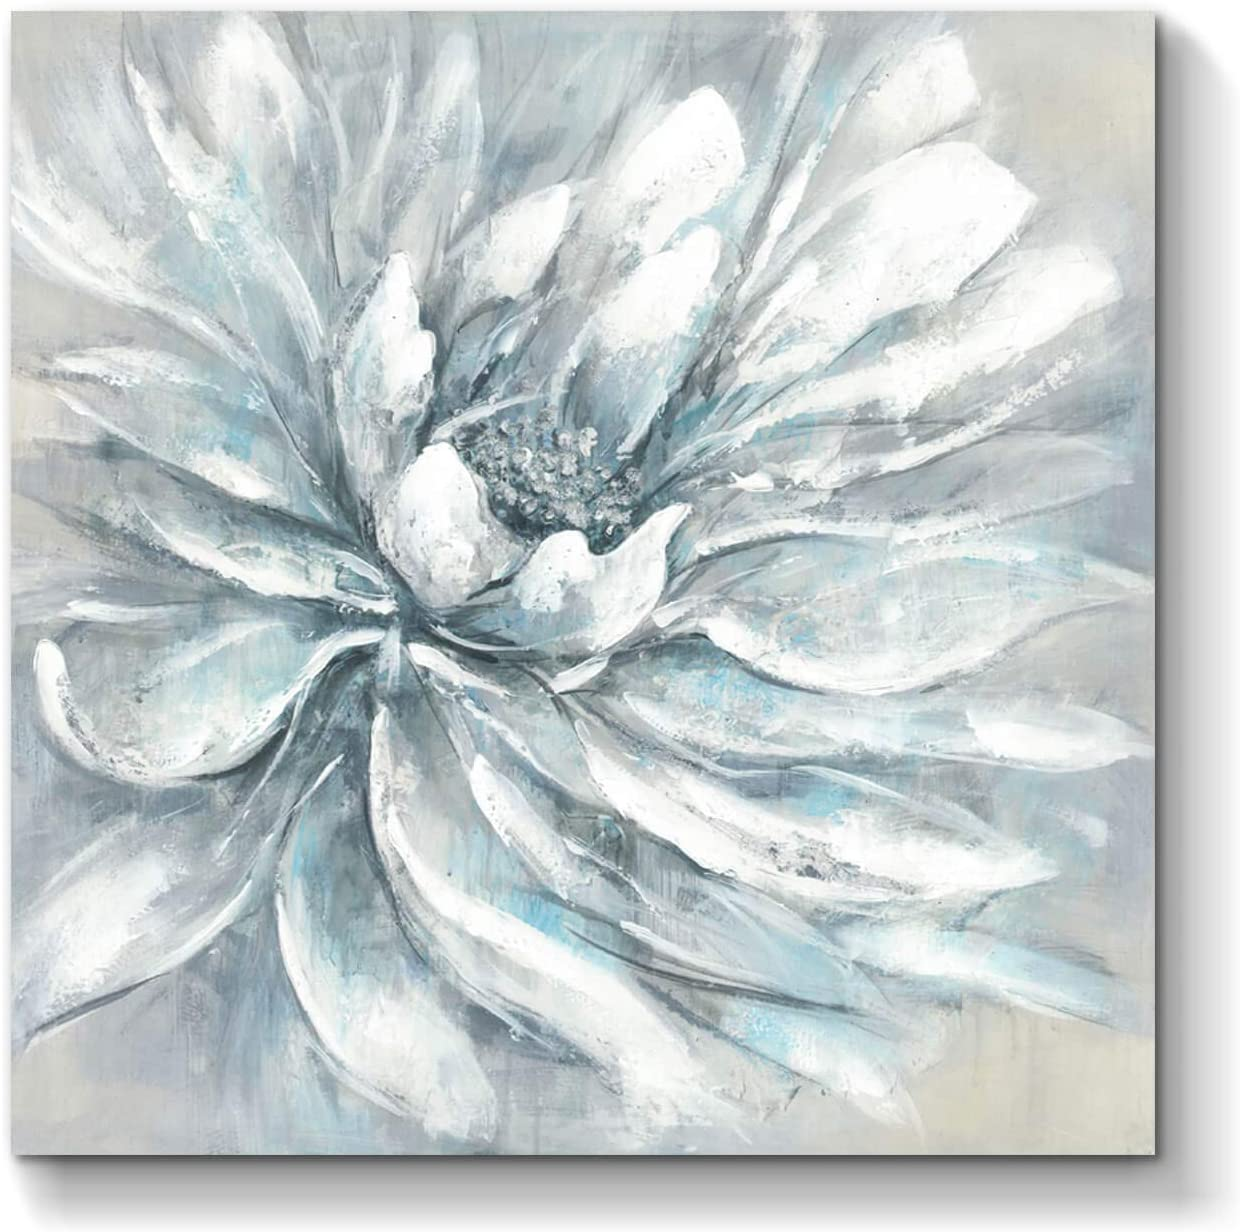 Flower Picture Abstract Wall Art: Floral Painting Hand Painted Artwork on Canvas for Office ( 36'' x 36'' x 1 Panel )